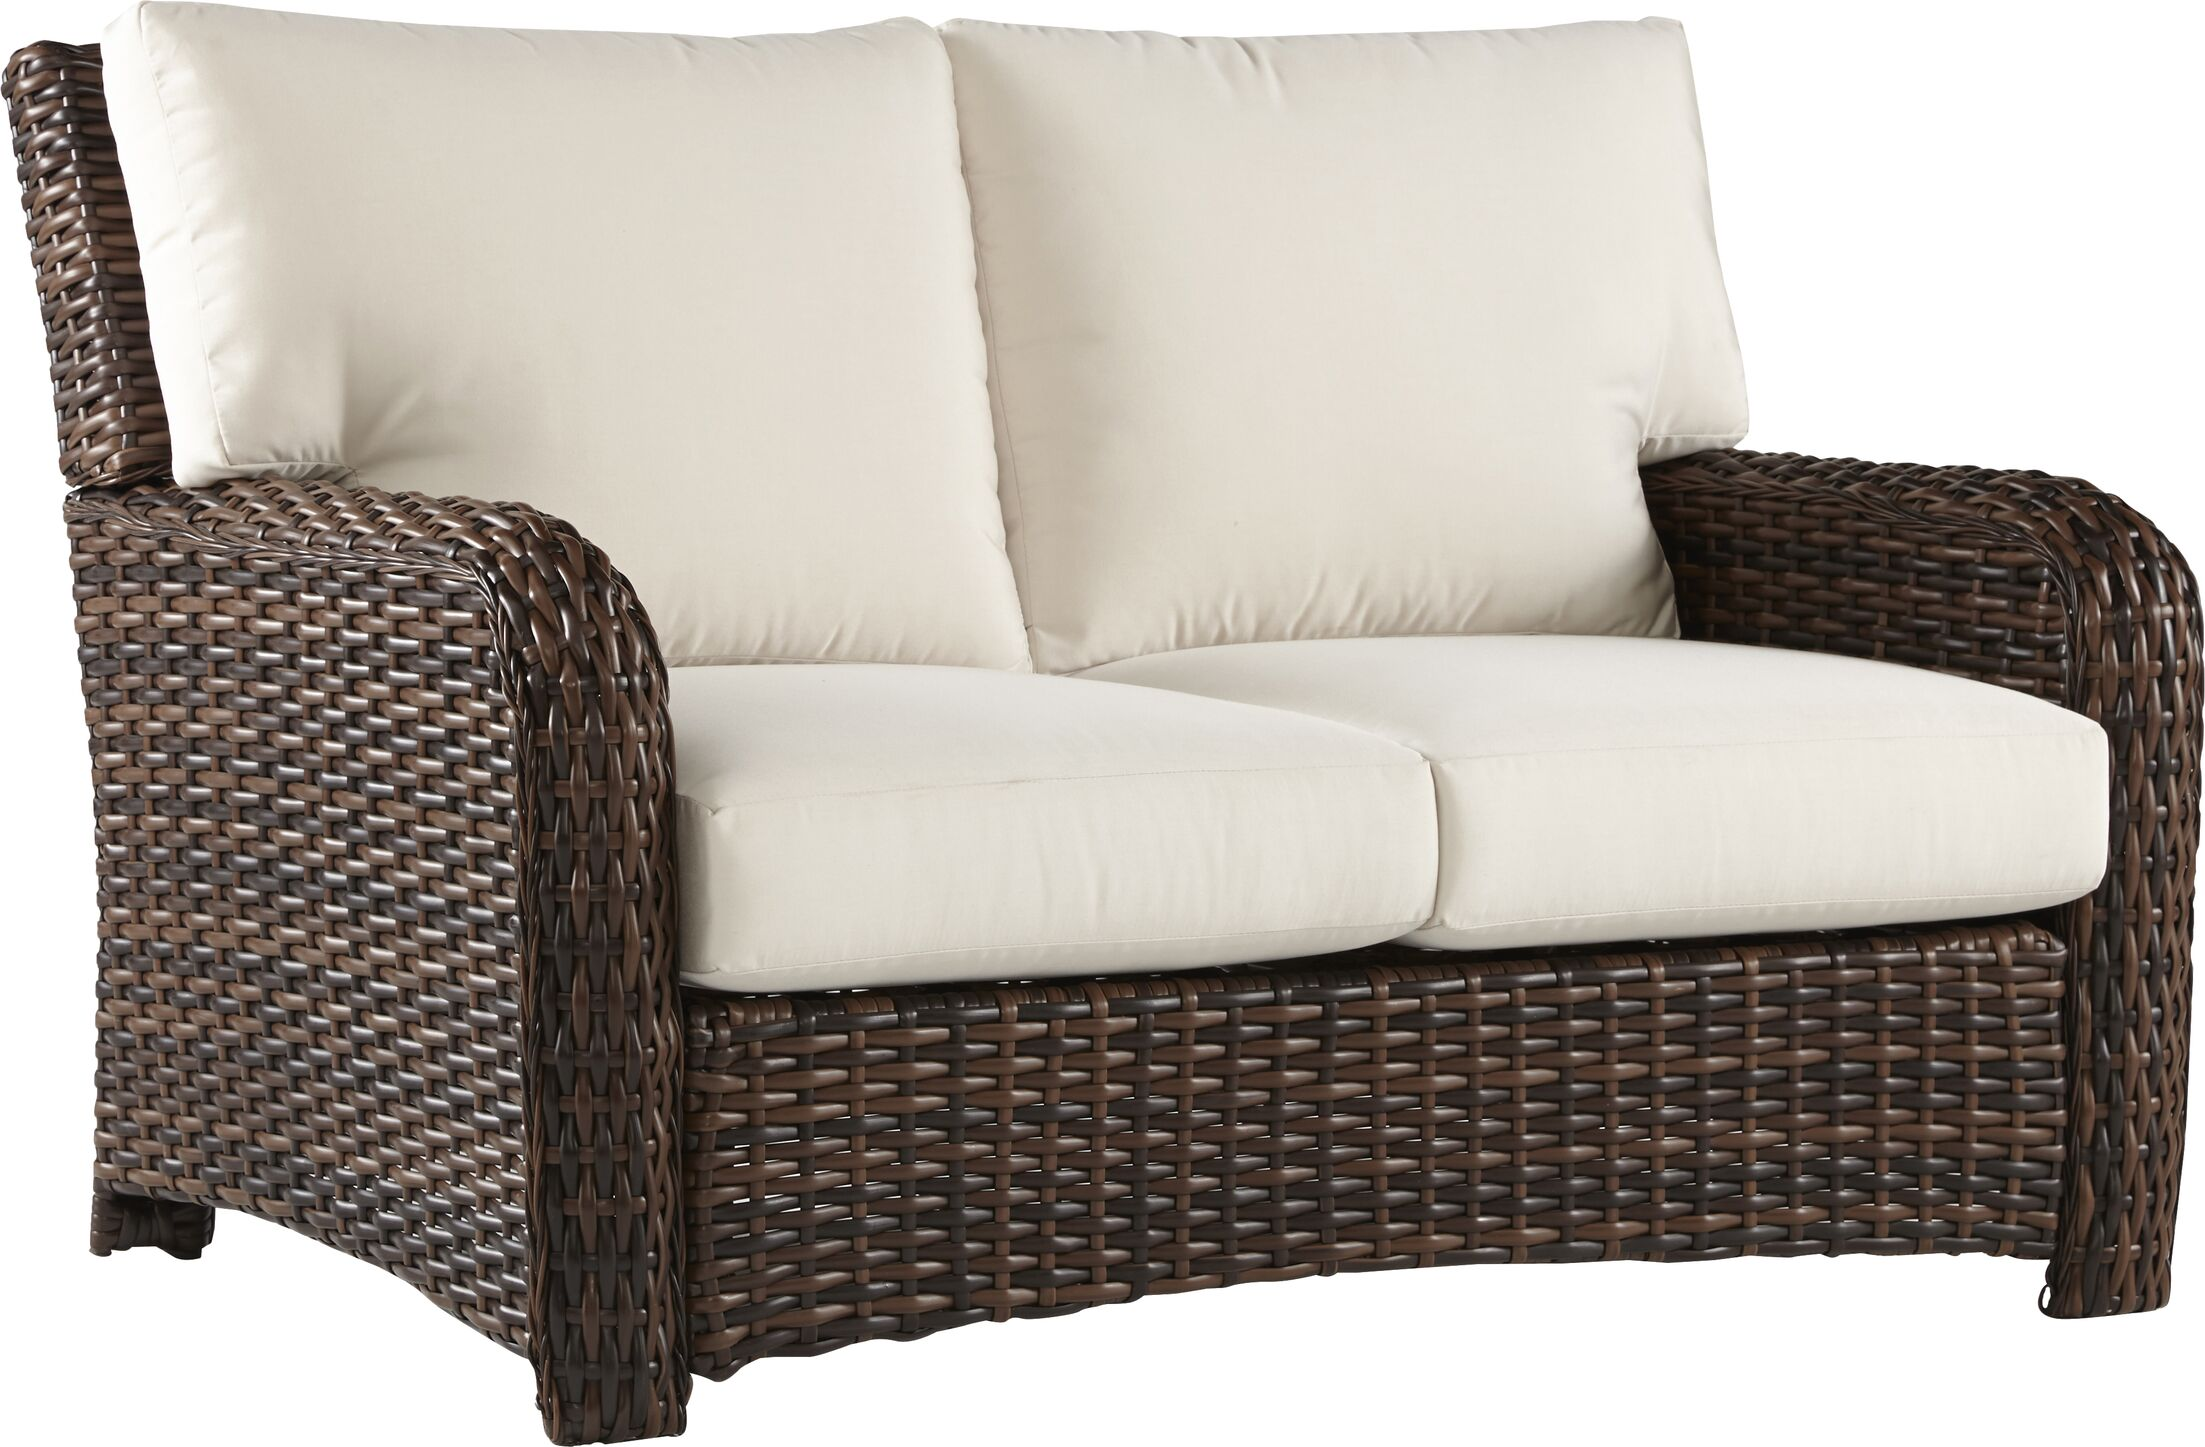 Chorio Loveseat with Cushions Cushion Color: Sesame, Frame Color: Stone